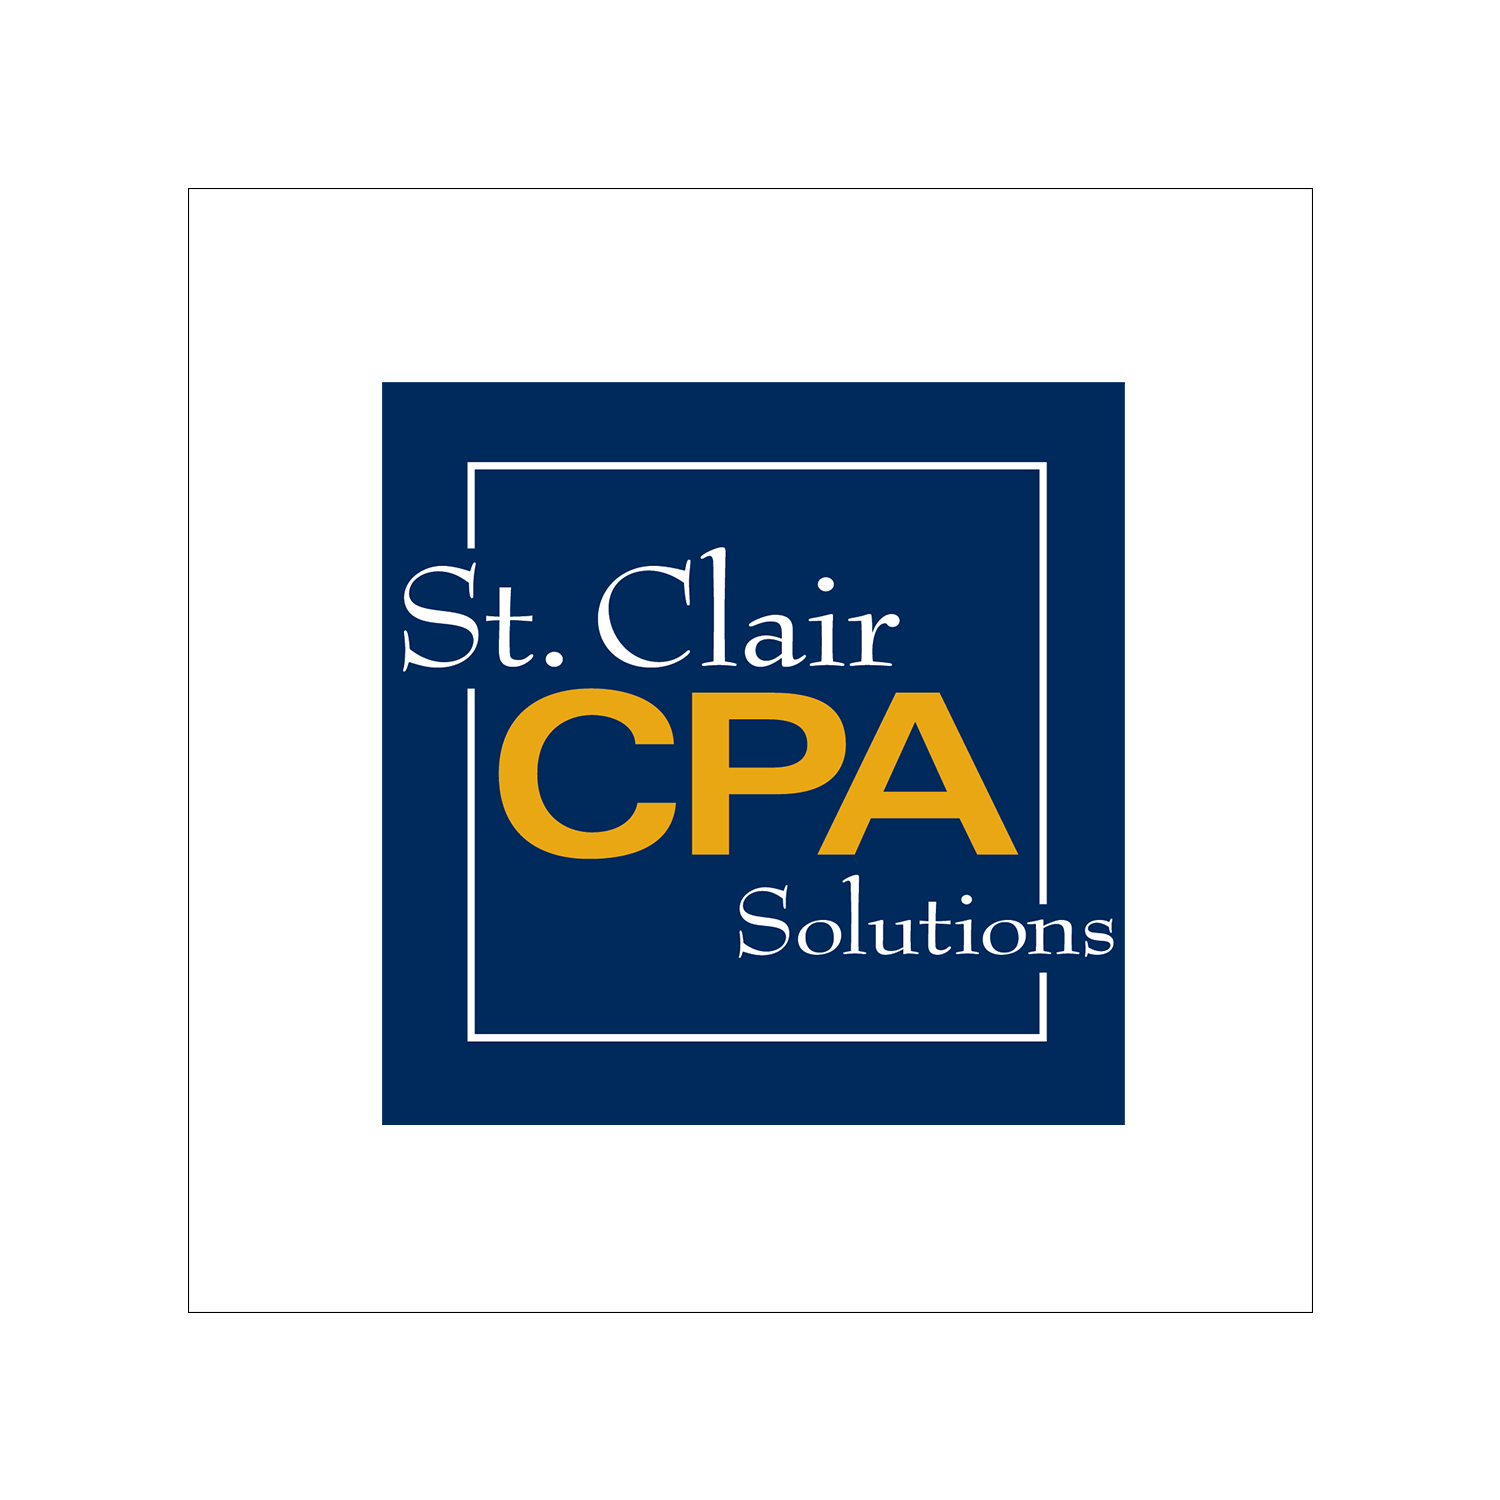 St. Clair CPA Solutions